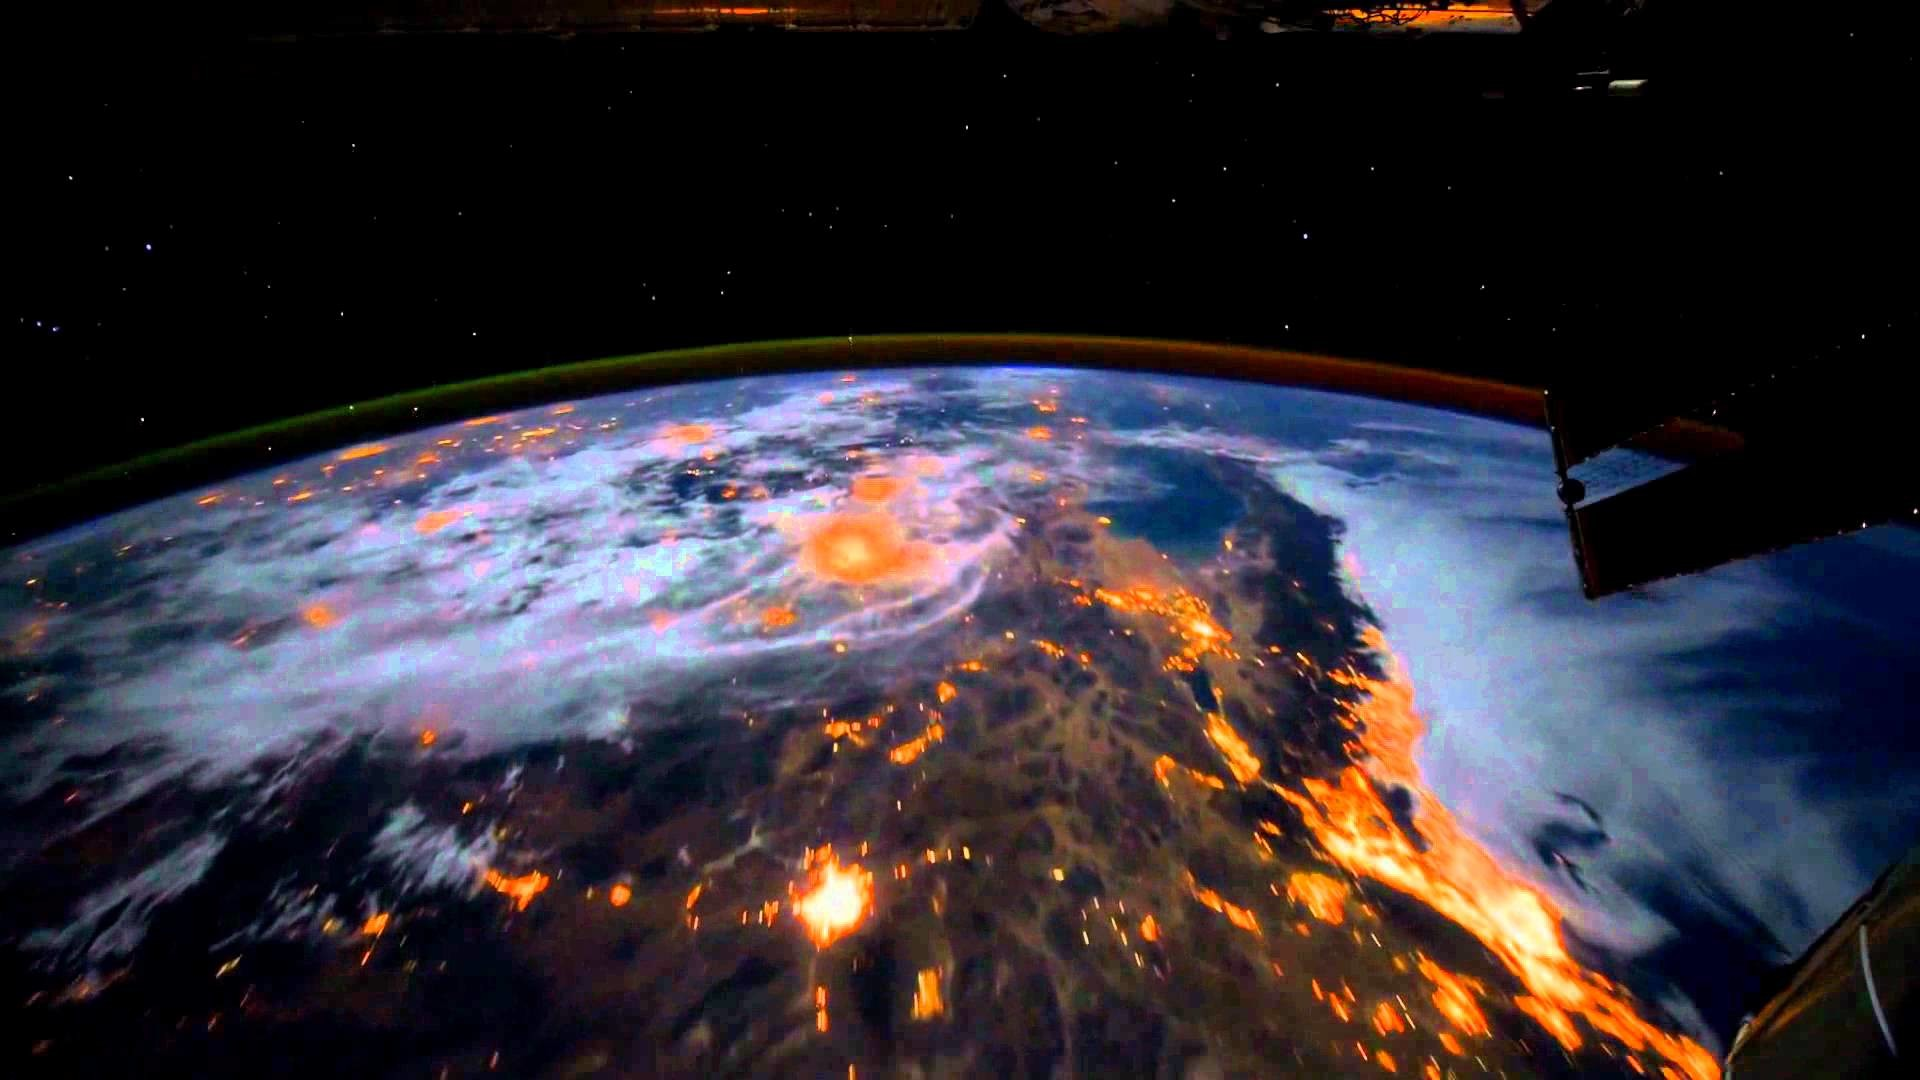 [Dreamscene] Animated Wallpaper – Earth View from the ISS – YouTube